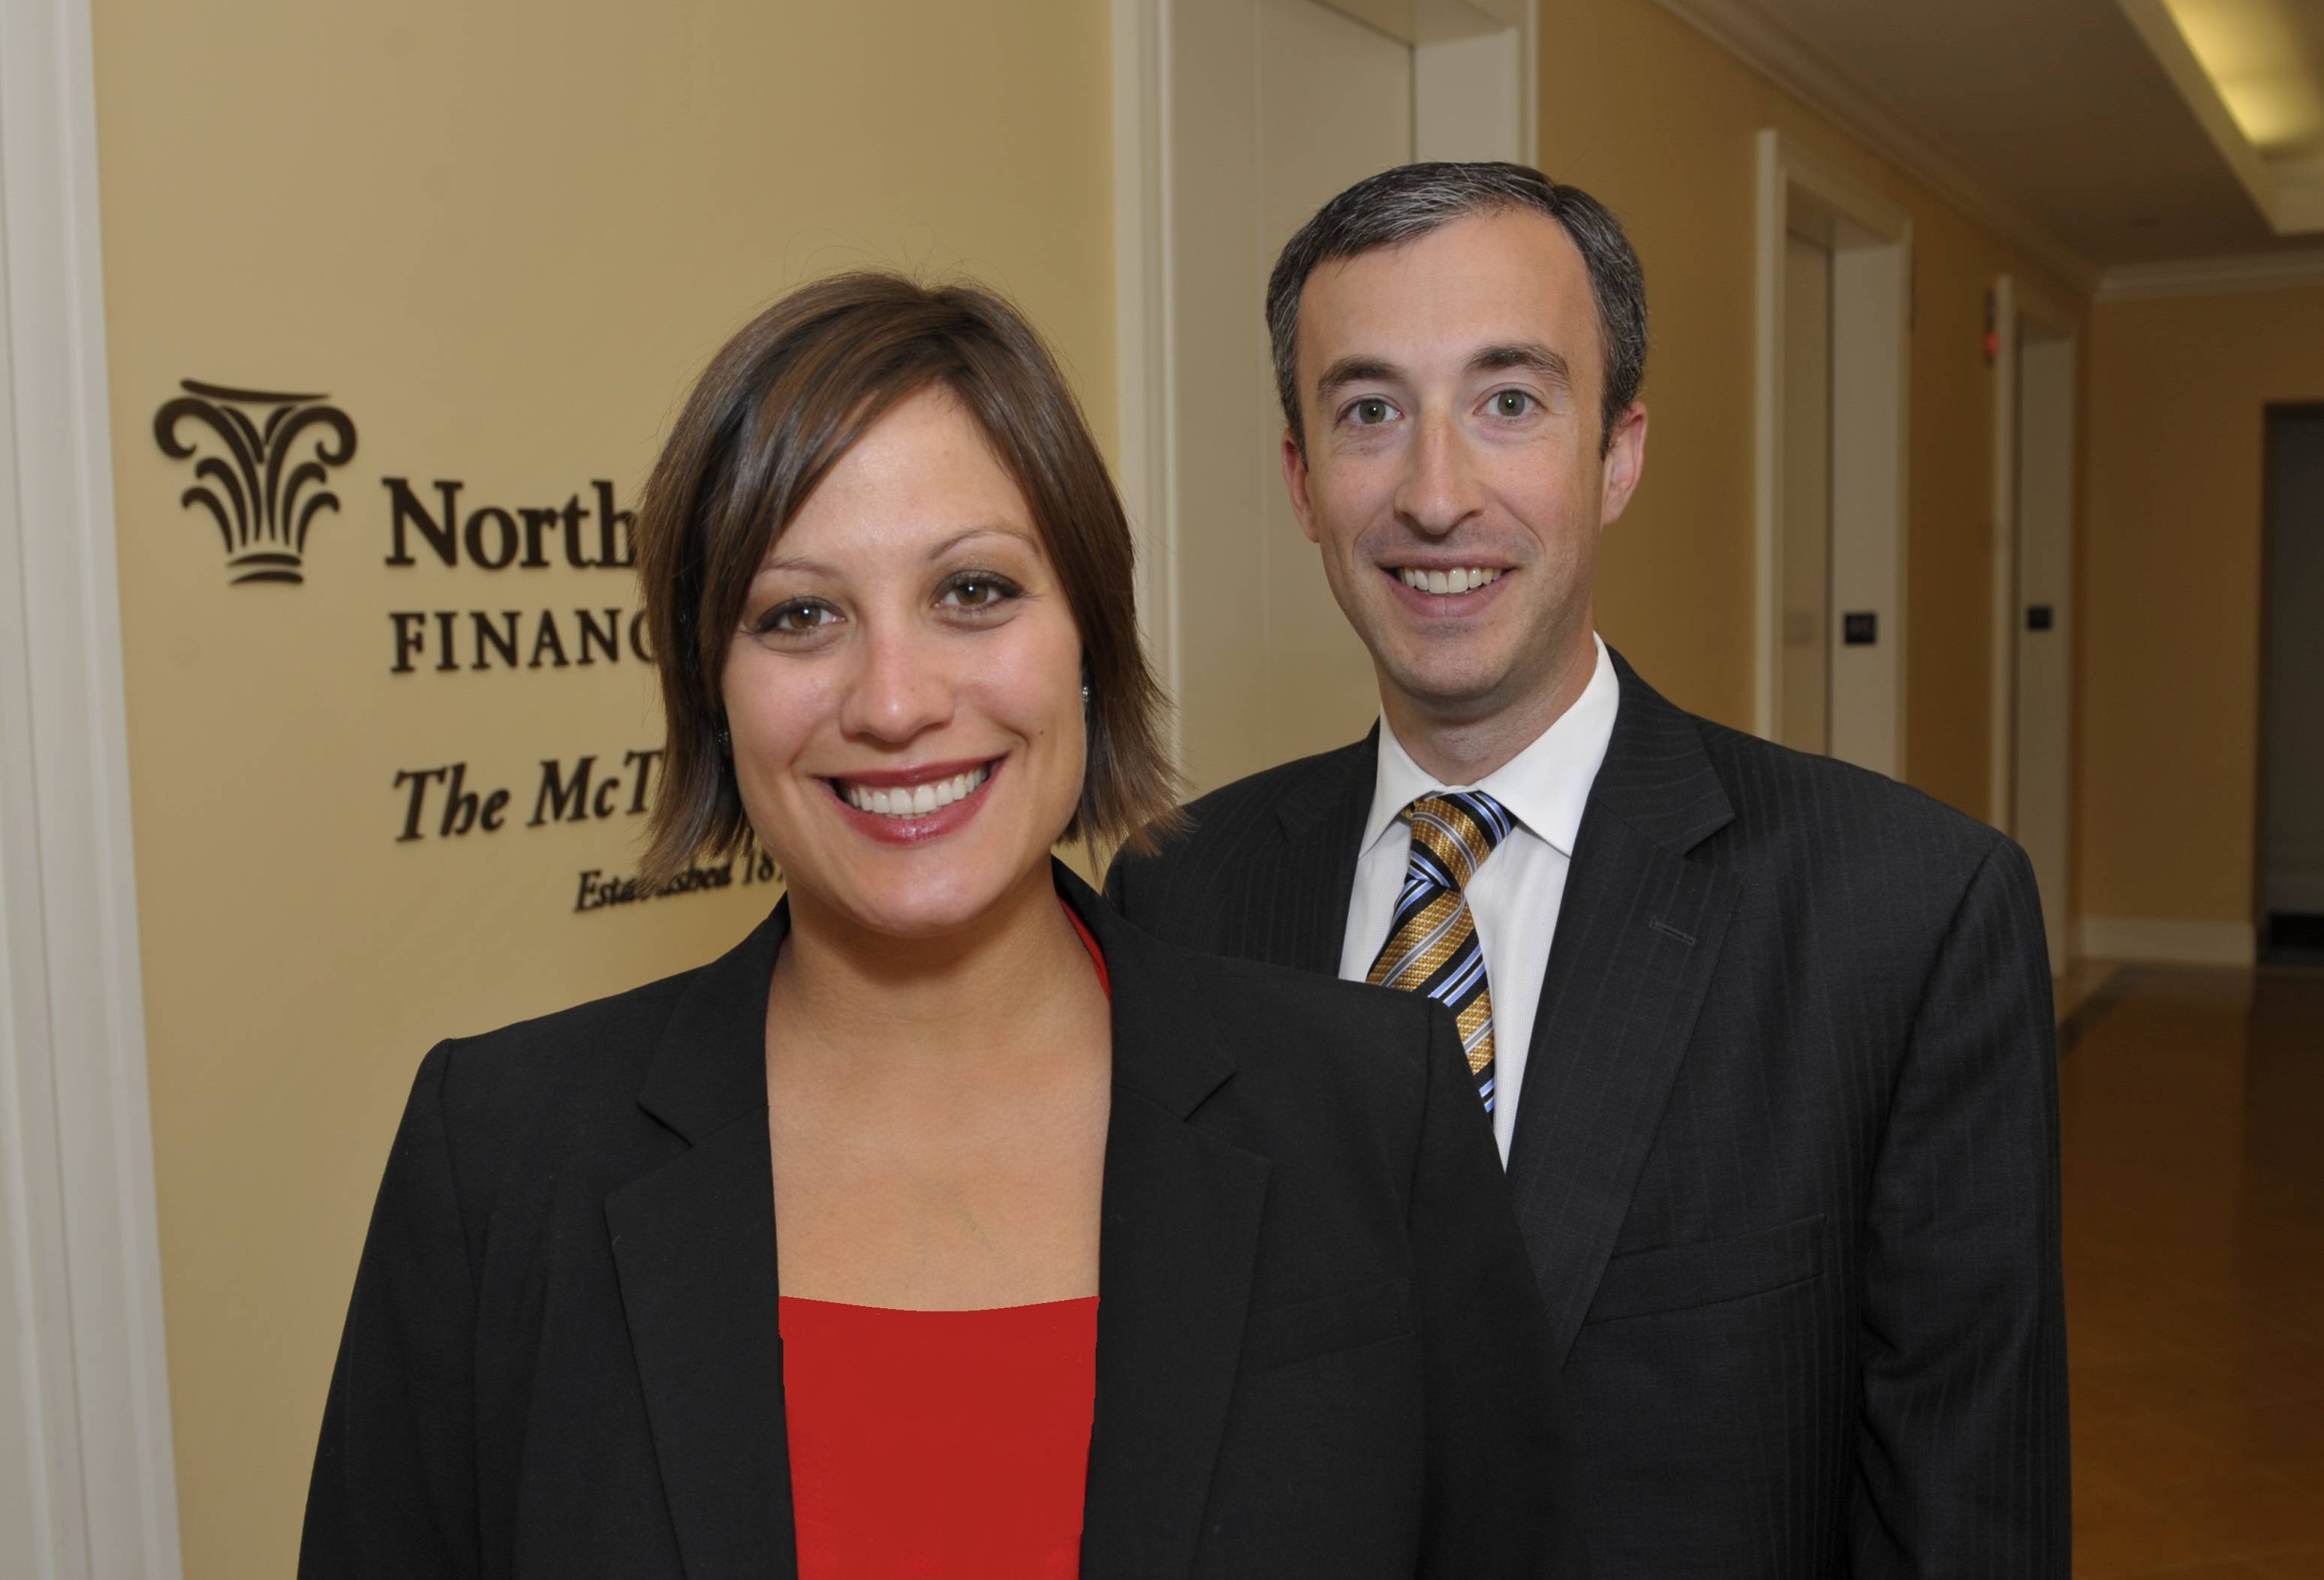 Having met recruiting targets for 2012, the Northwestern Mutual District Office in Northbrook office aims to add 8 financial representatives in 2013. The recruiting team of Lisa Davis, recruiting coordinator and Scott Evans, managing director, are actively recruiting for 2013.